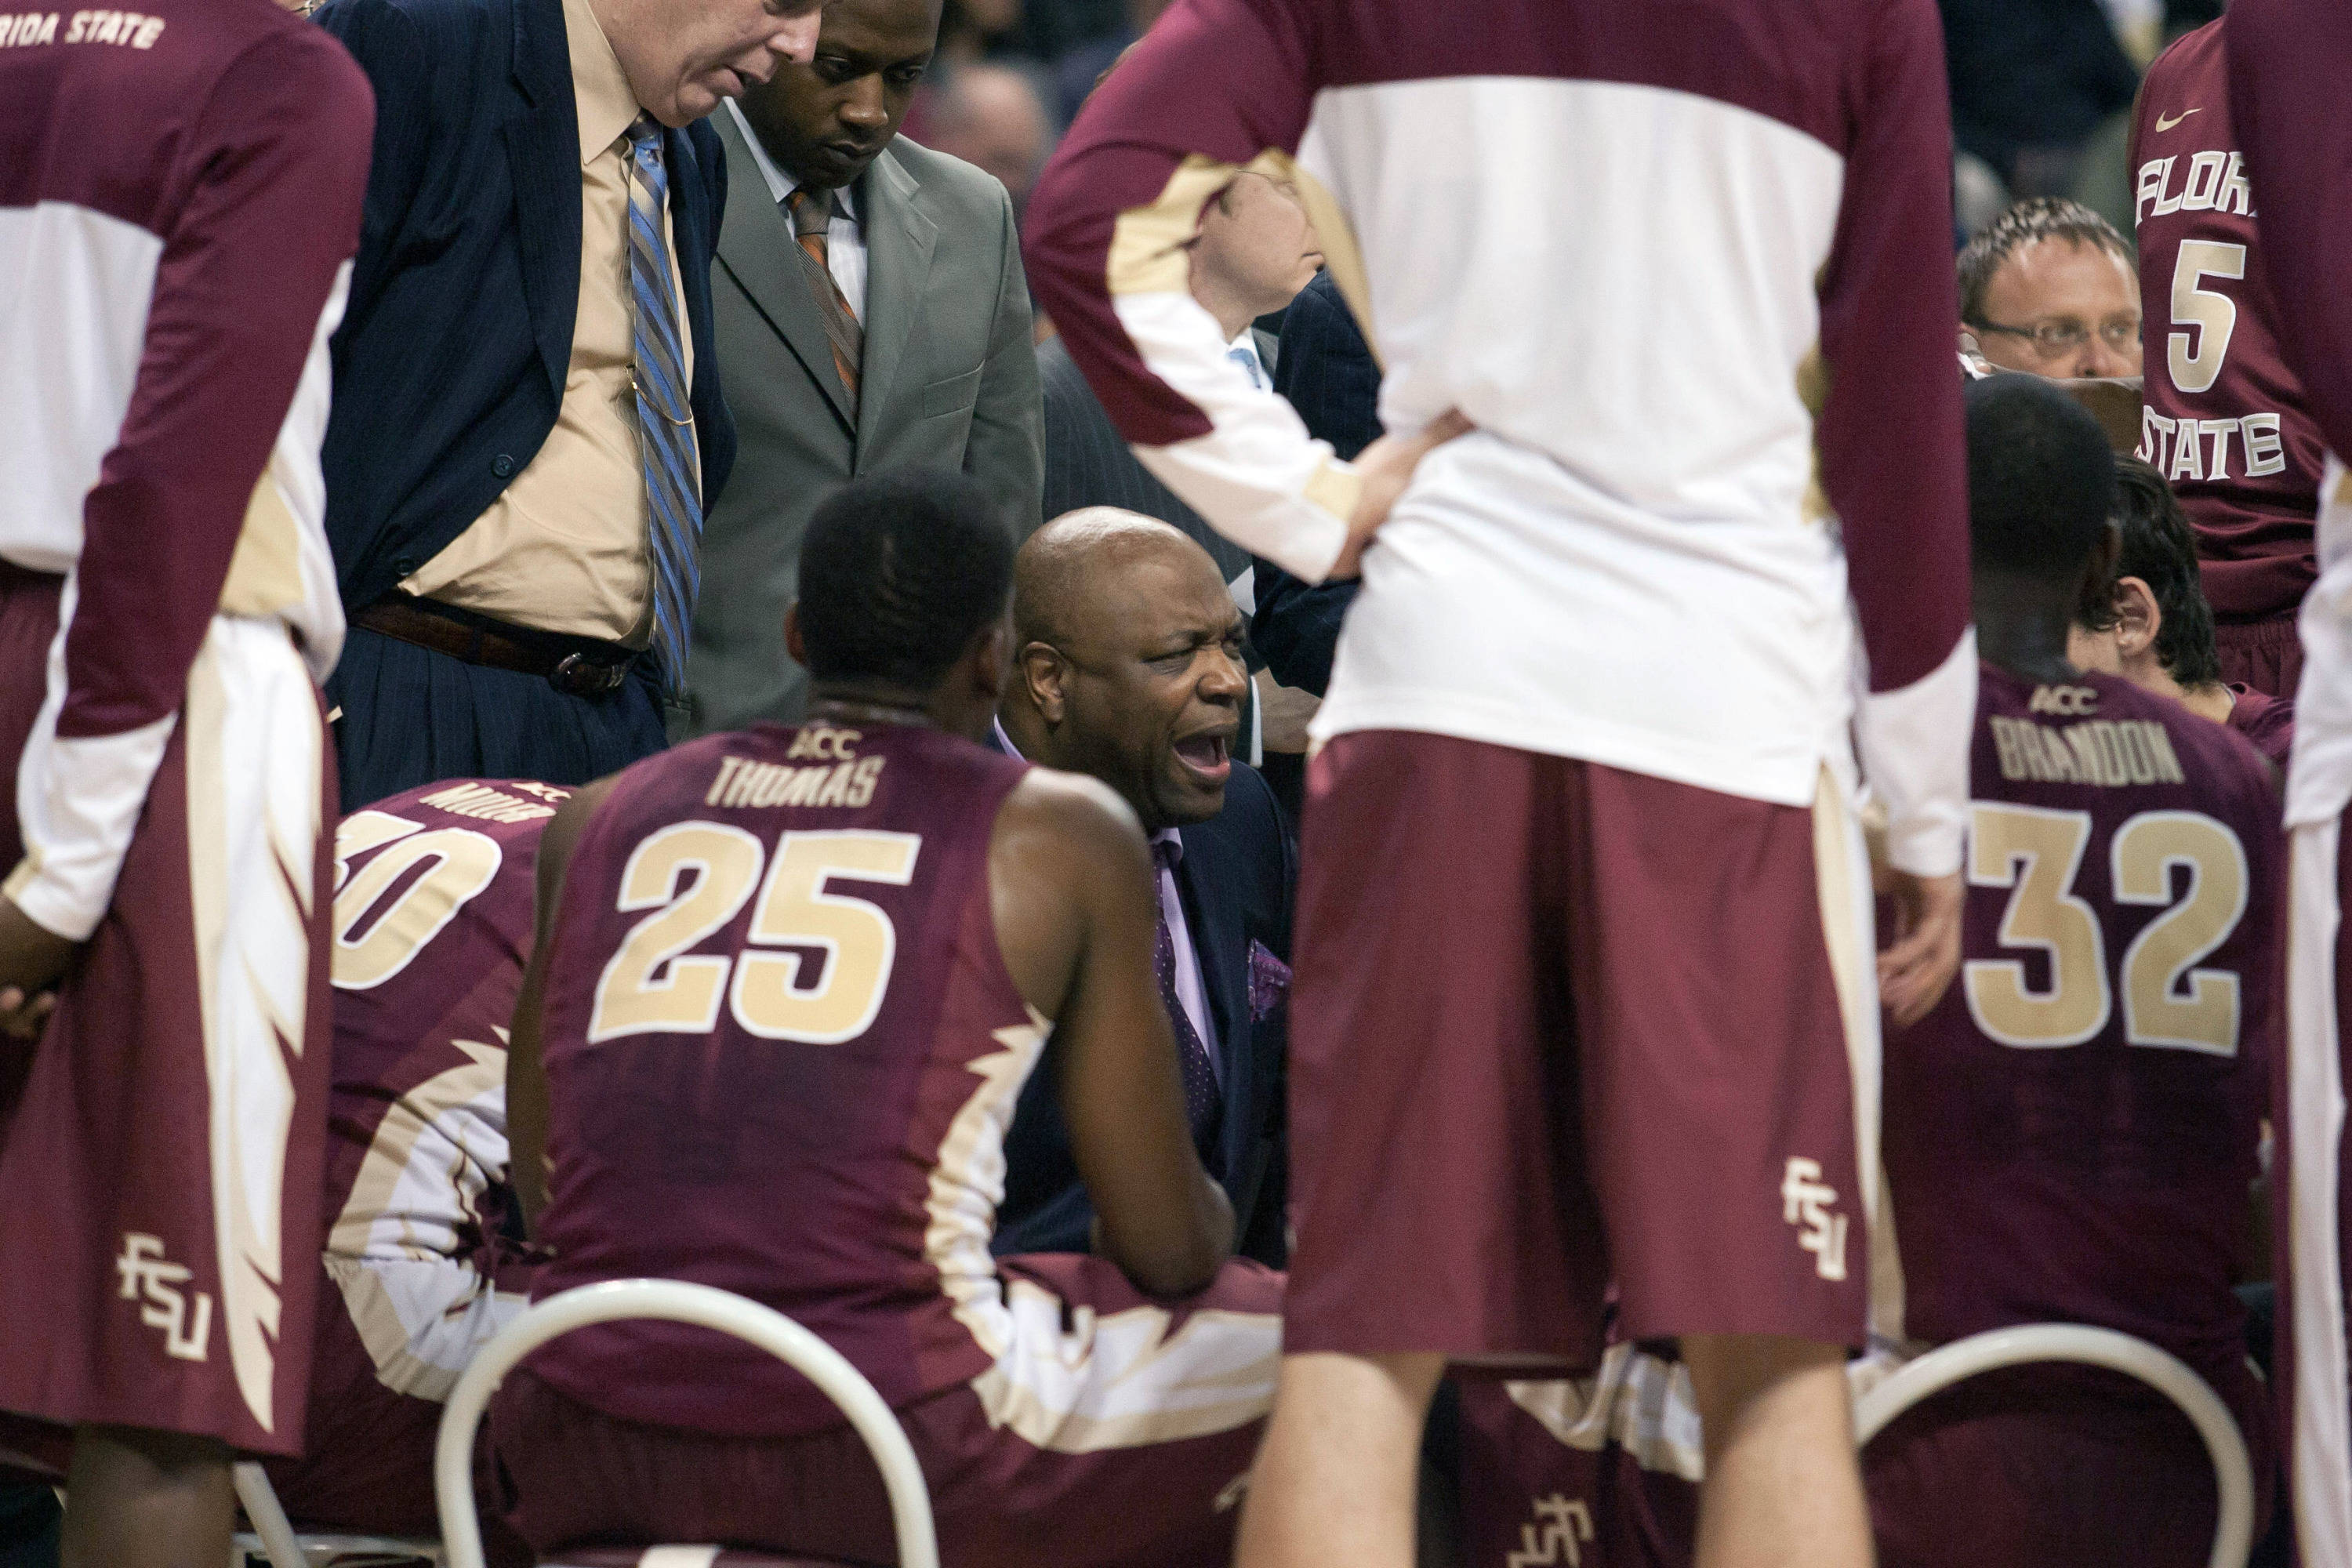 Florida State Seminoles head coach Leonard Hamilton talks with his players during a timeout. (Jeremy Brevard-USA TODAY Sports)